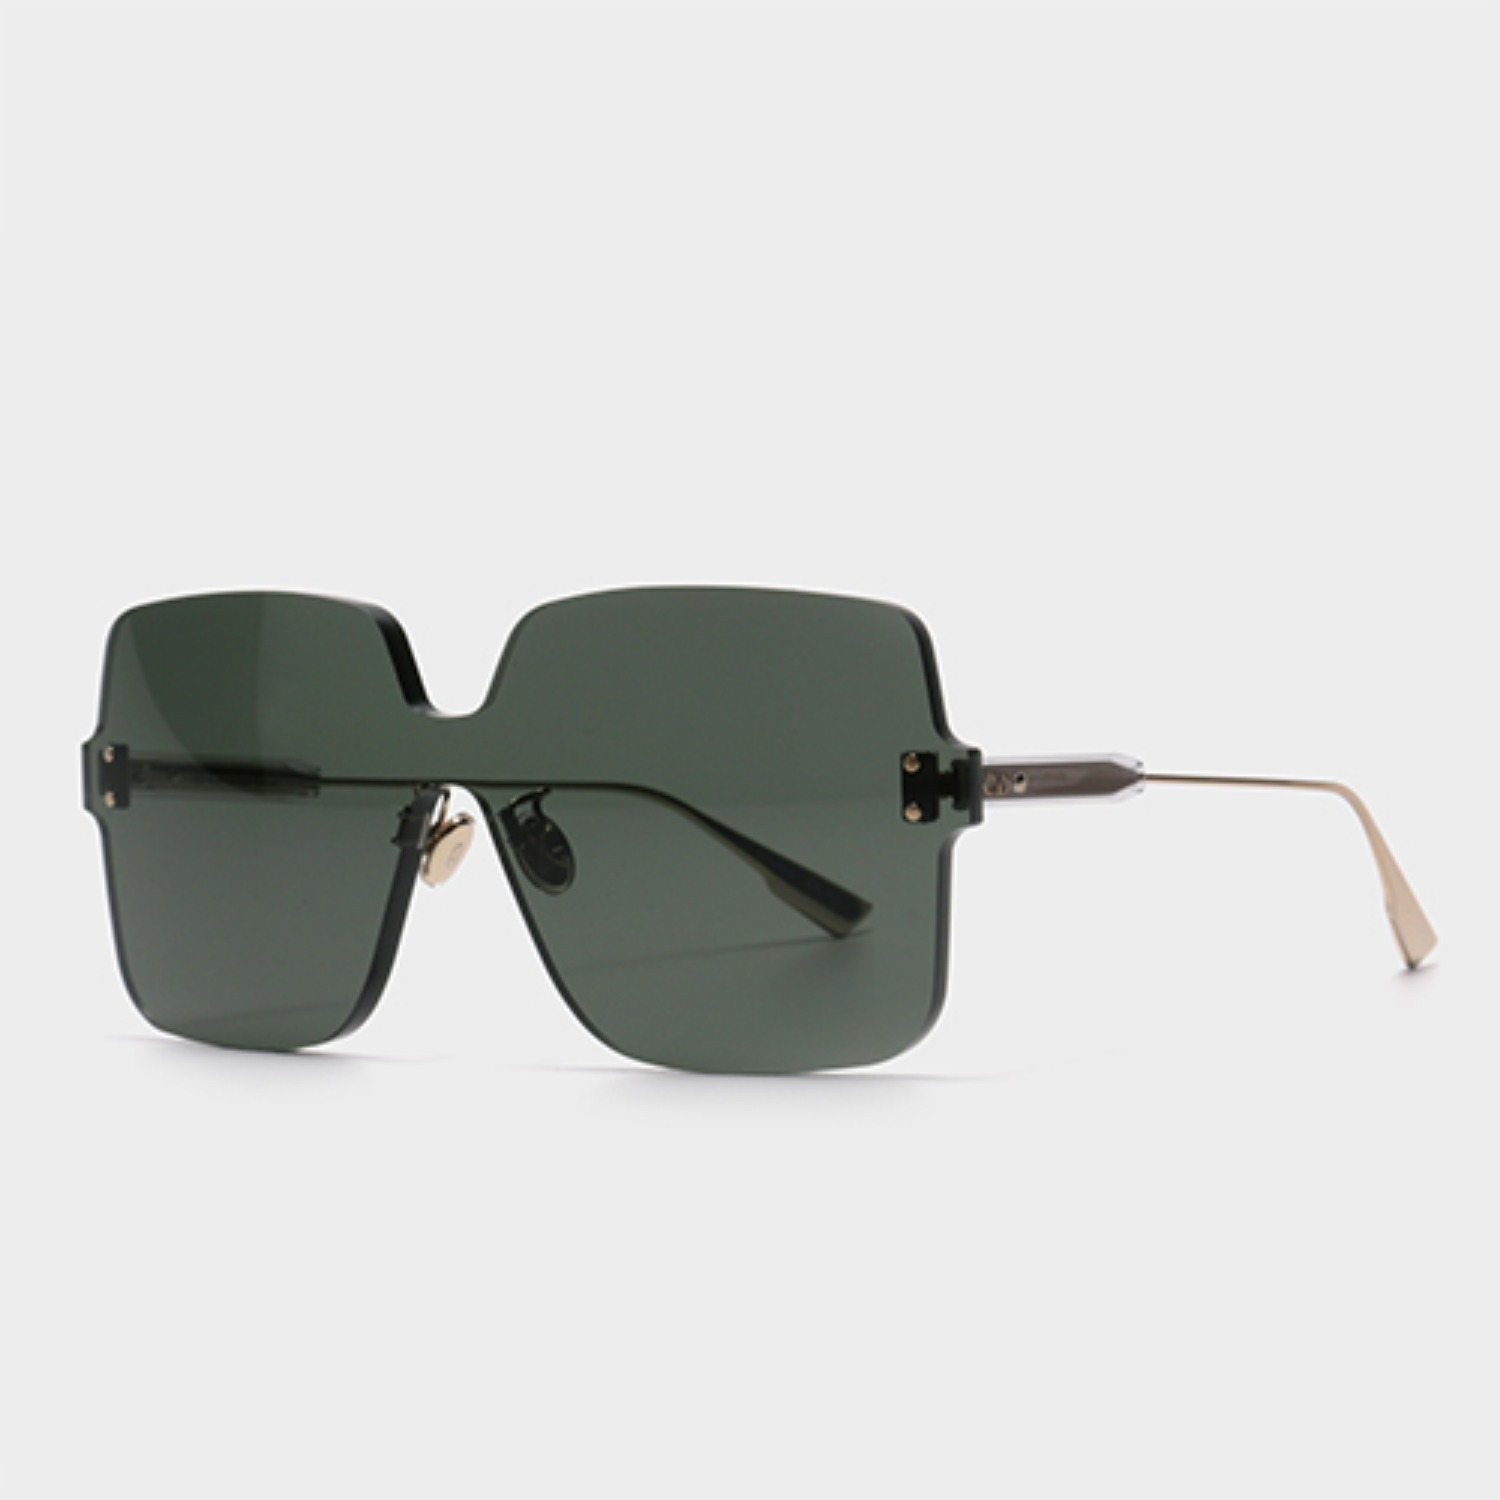 크리스챤디올 Dior Color Quake1 1EDQT (Green Lens)